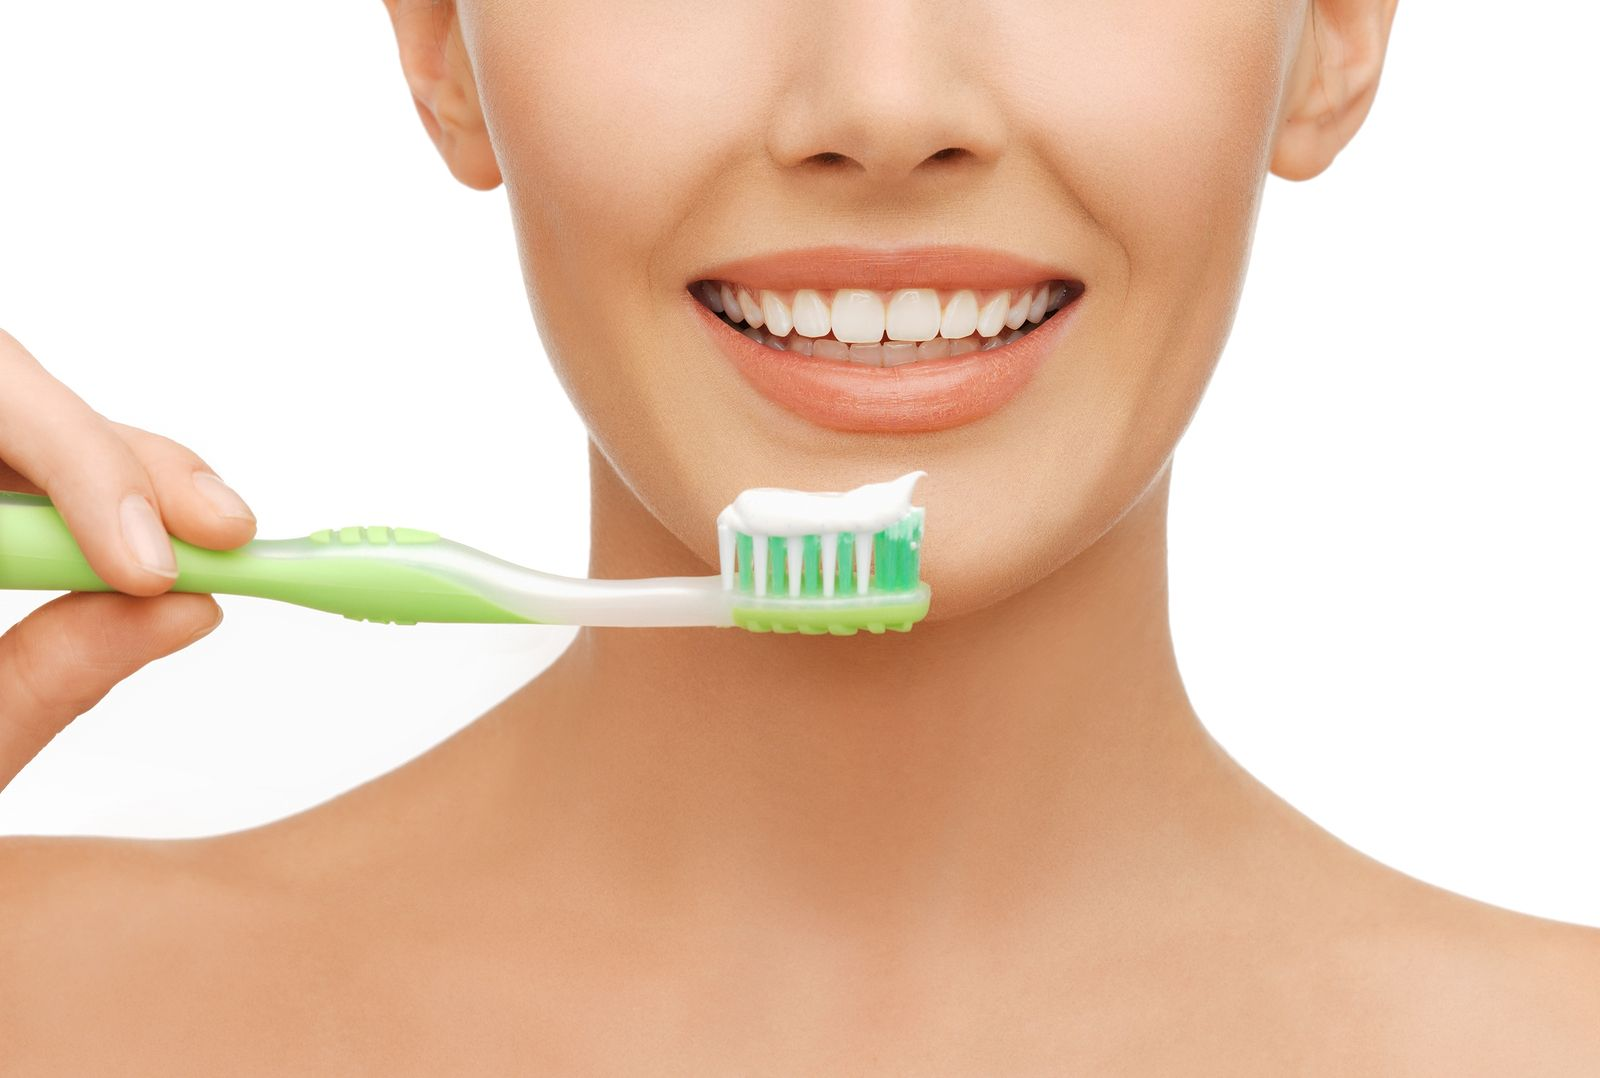 Mydentalhealth-how-to-brush-teeth-video.jpg